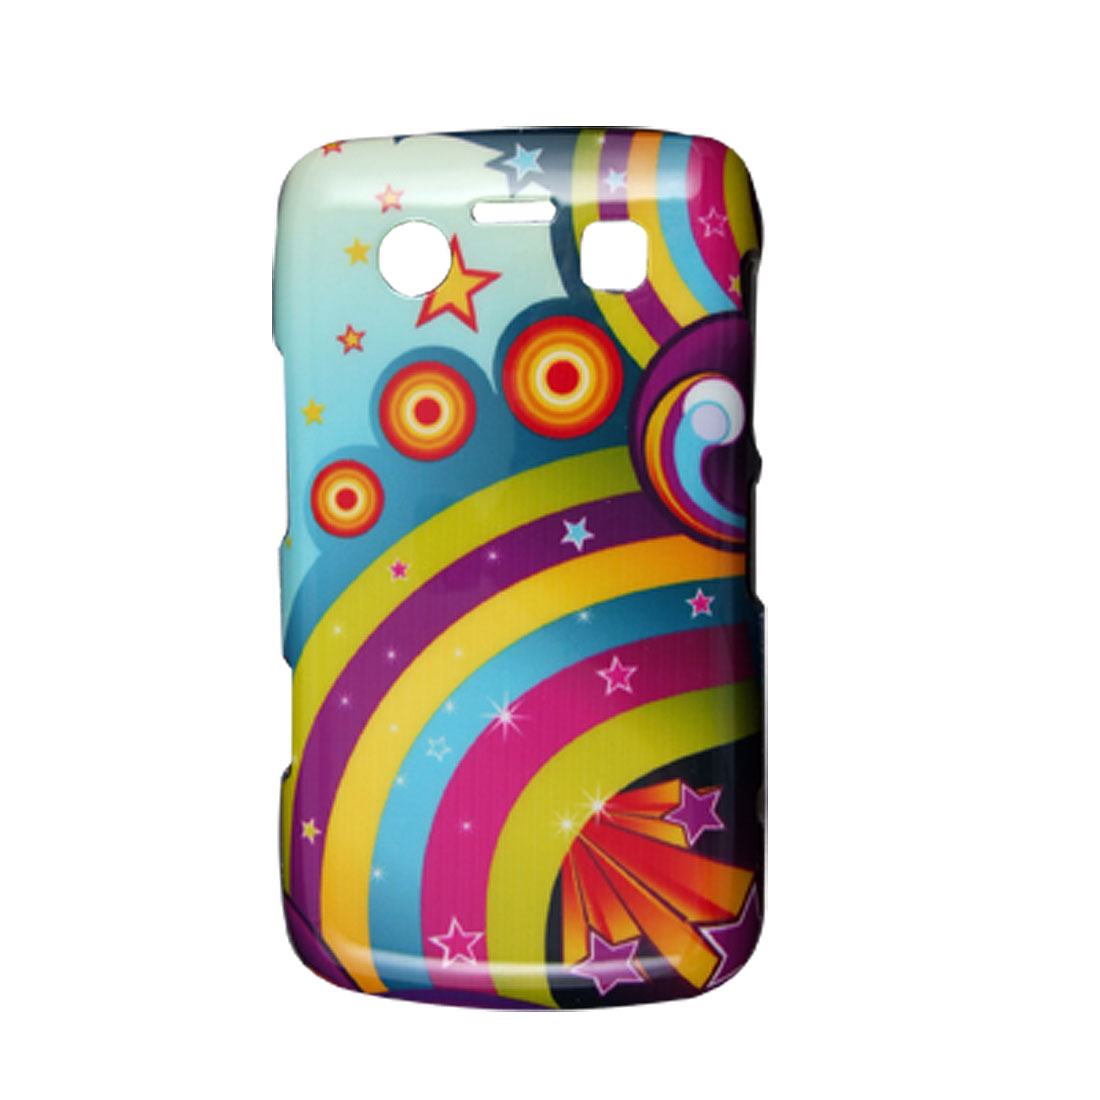 Colorful Printed Hard Plastic Back Case for Blackberry 9700 9020